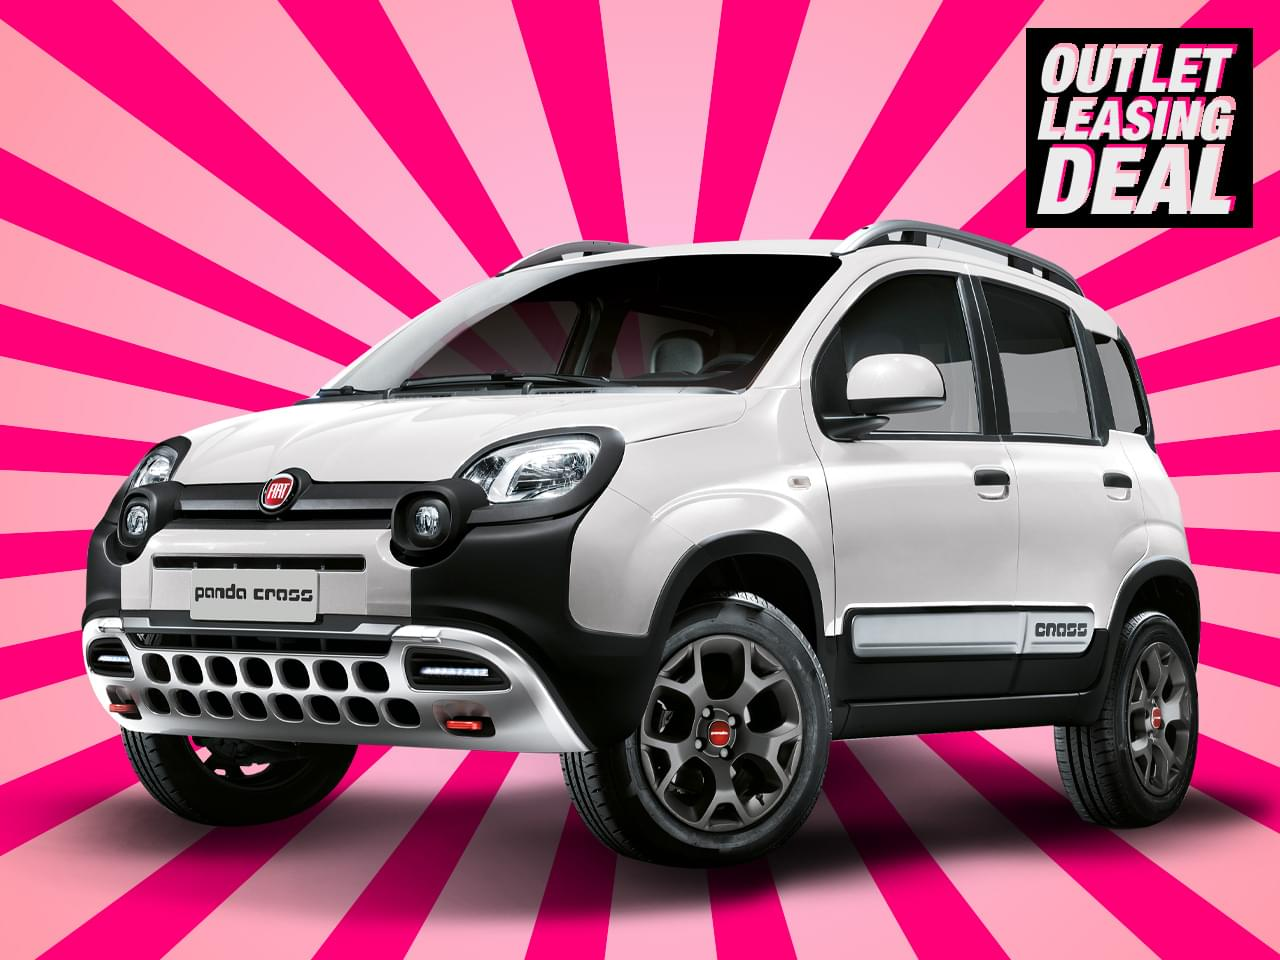 Fiat Panda City Cross More 1.2 8V